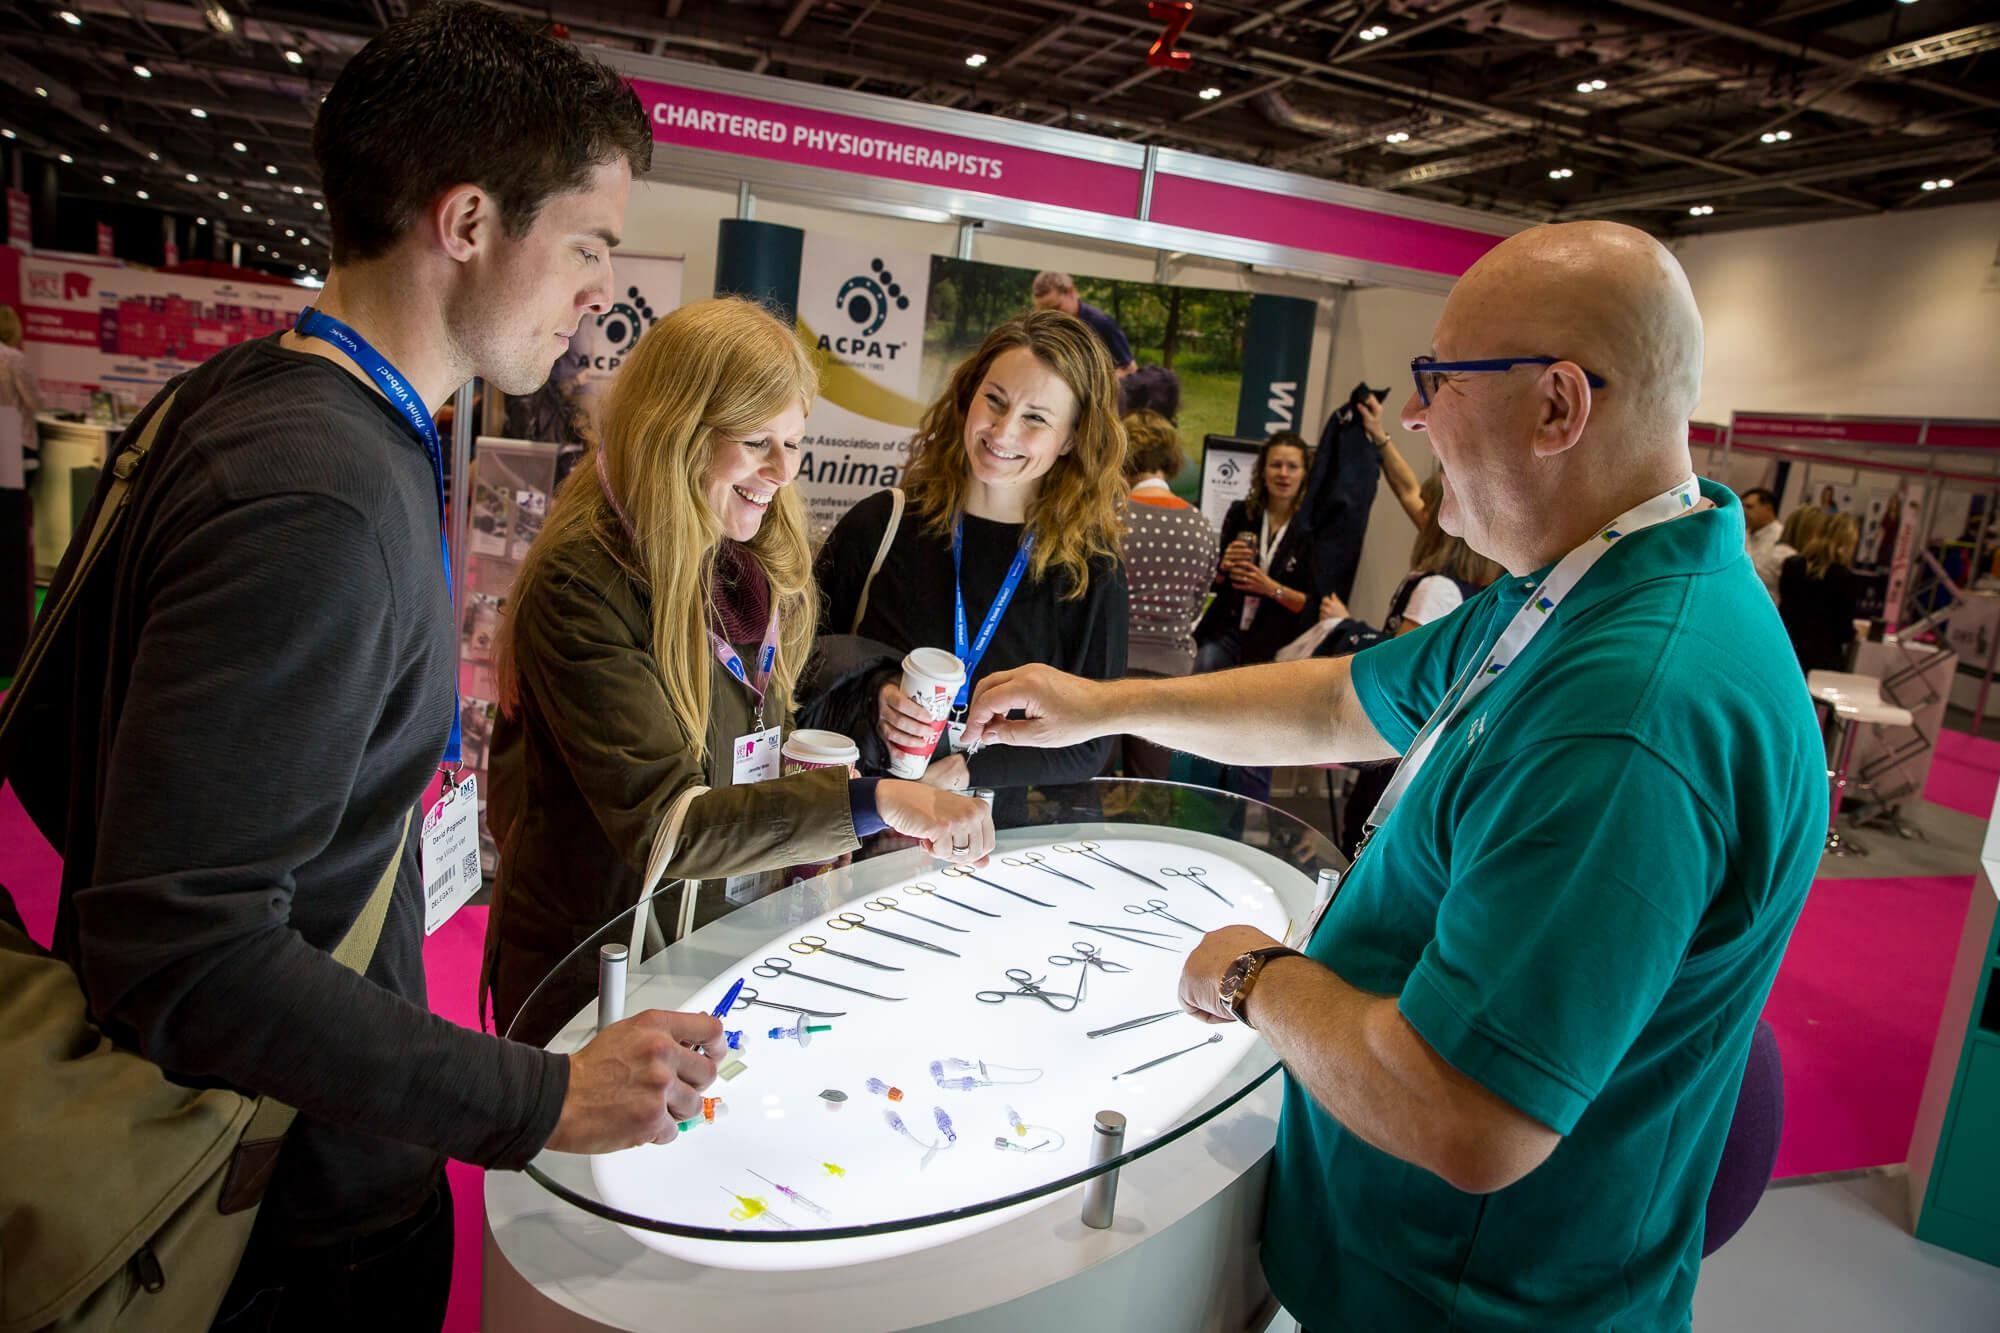 If you want to make an impact on the UK vet professions, the London Vet Show is the place to be.